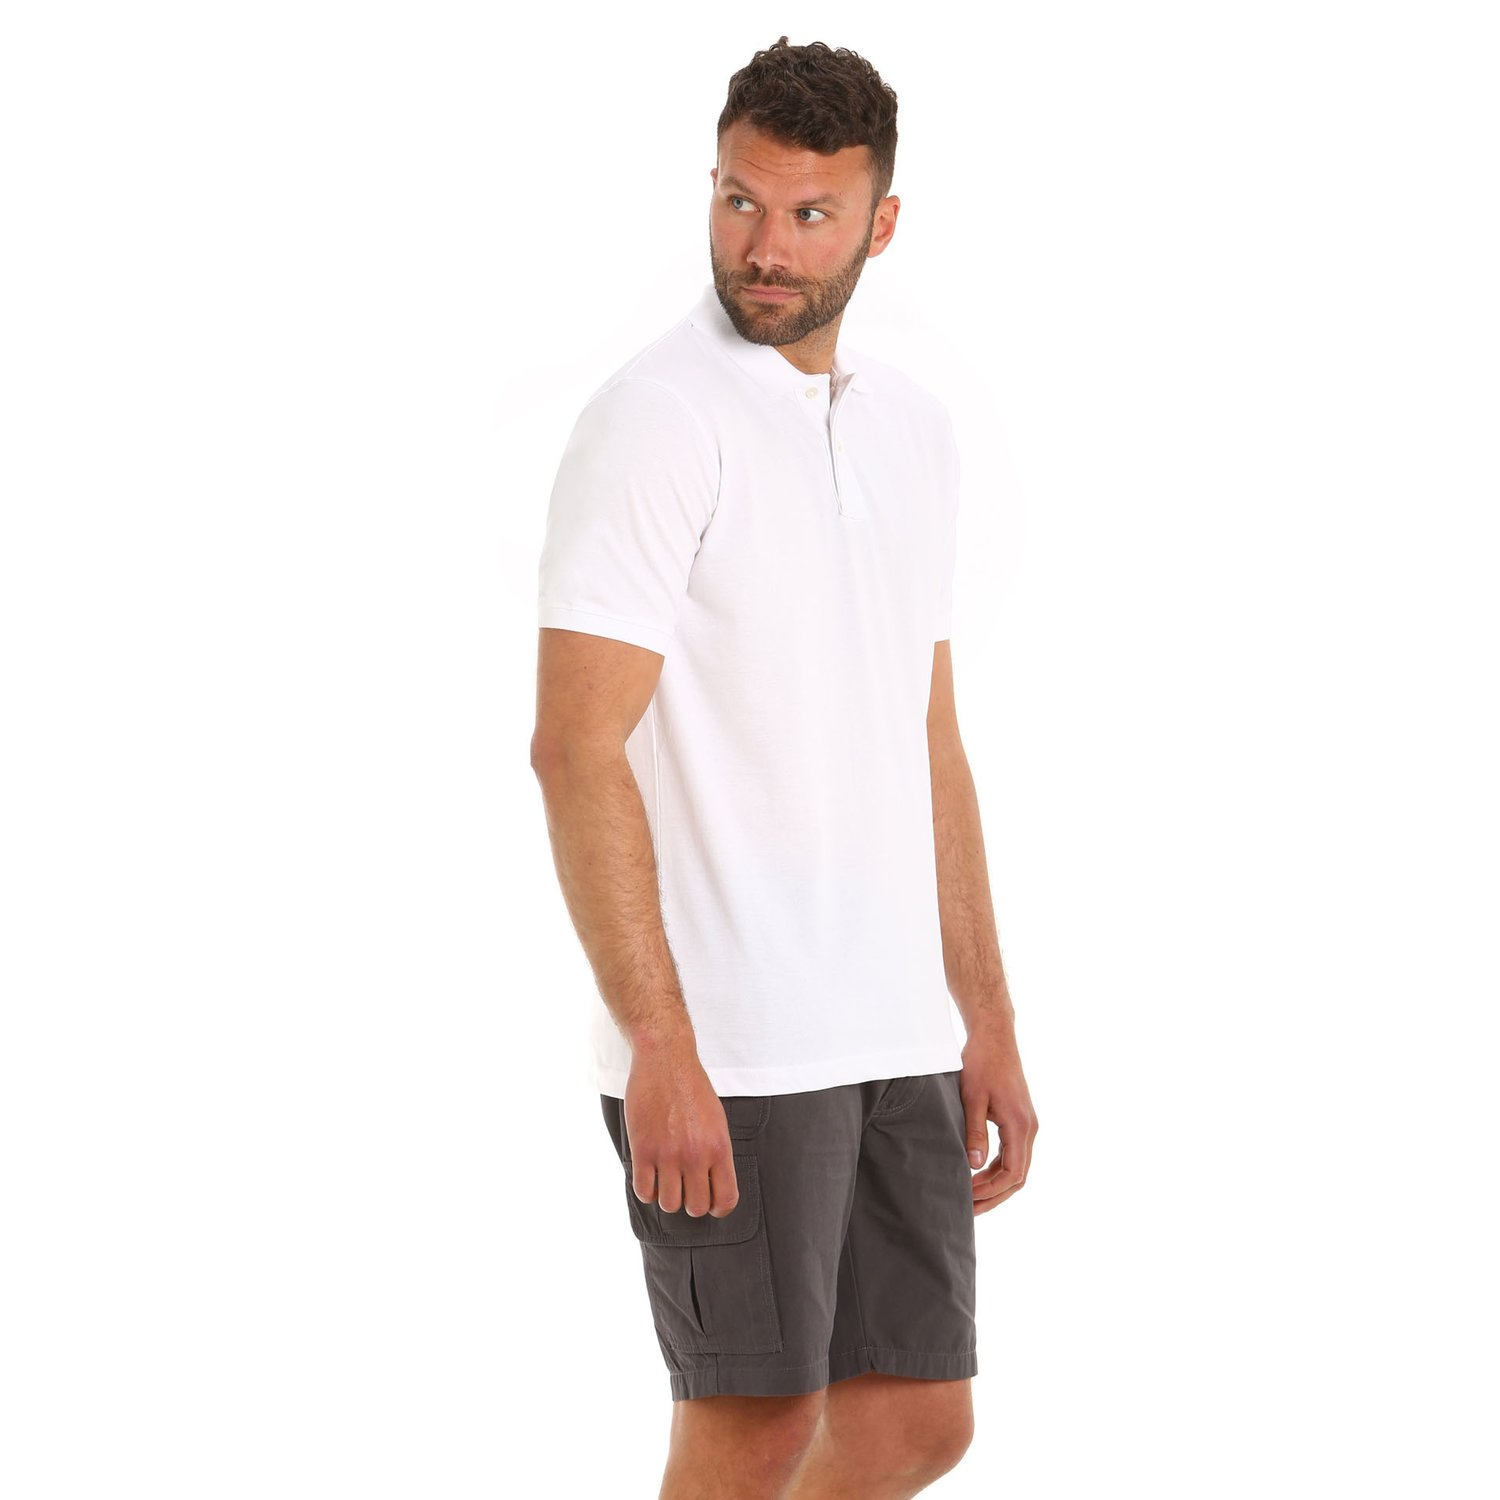 Polo Coleman Mc New - White